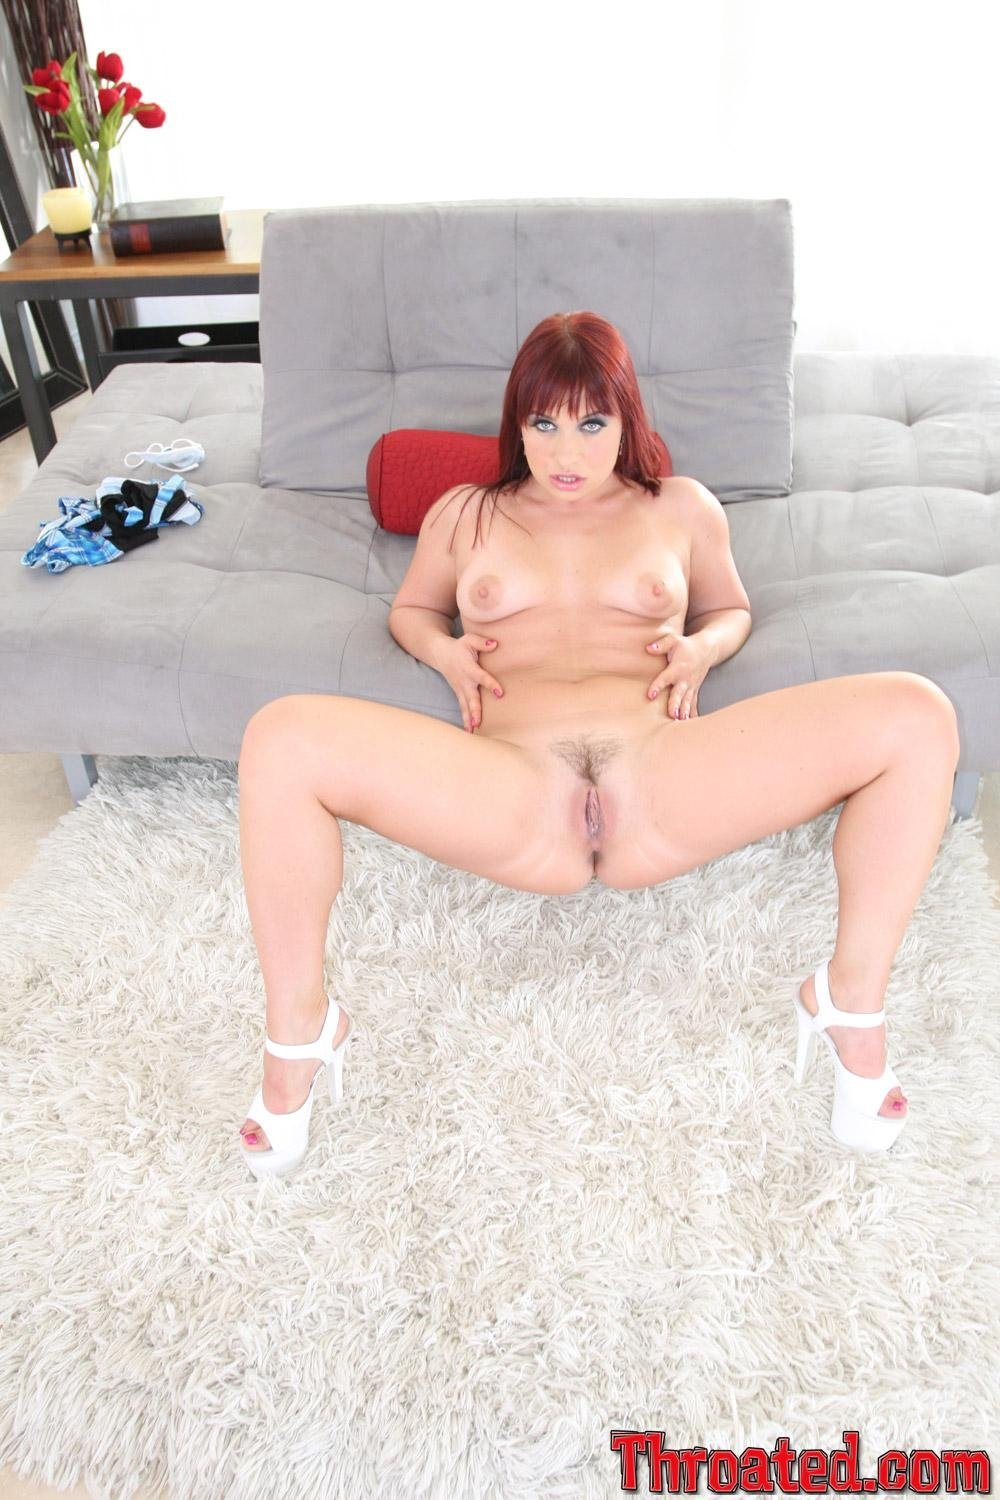 Chubby blonde dildo amateur hd porn video b3 Brother for pay white for webcamo